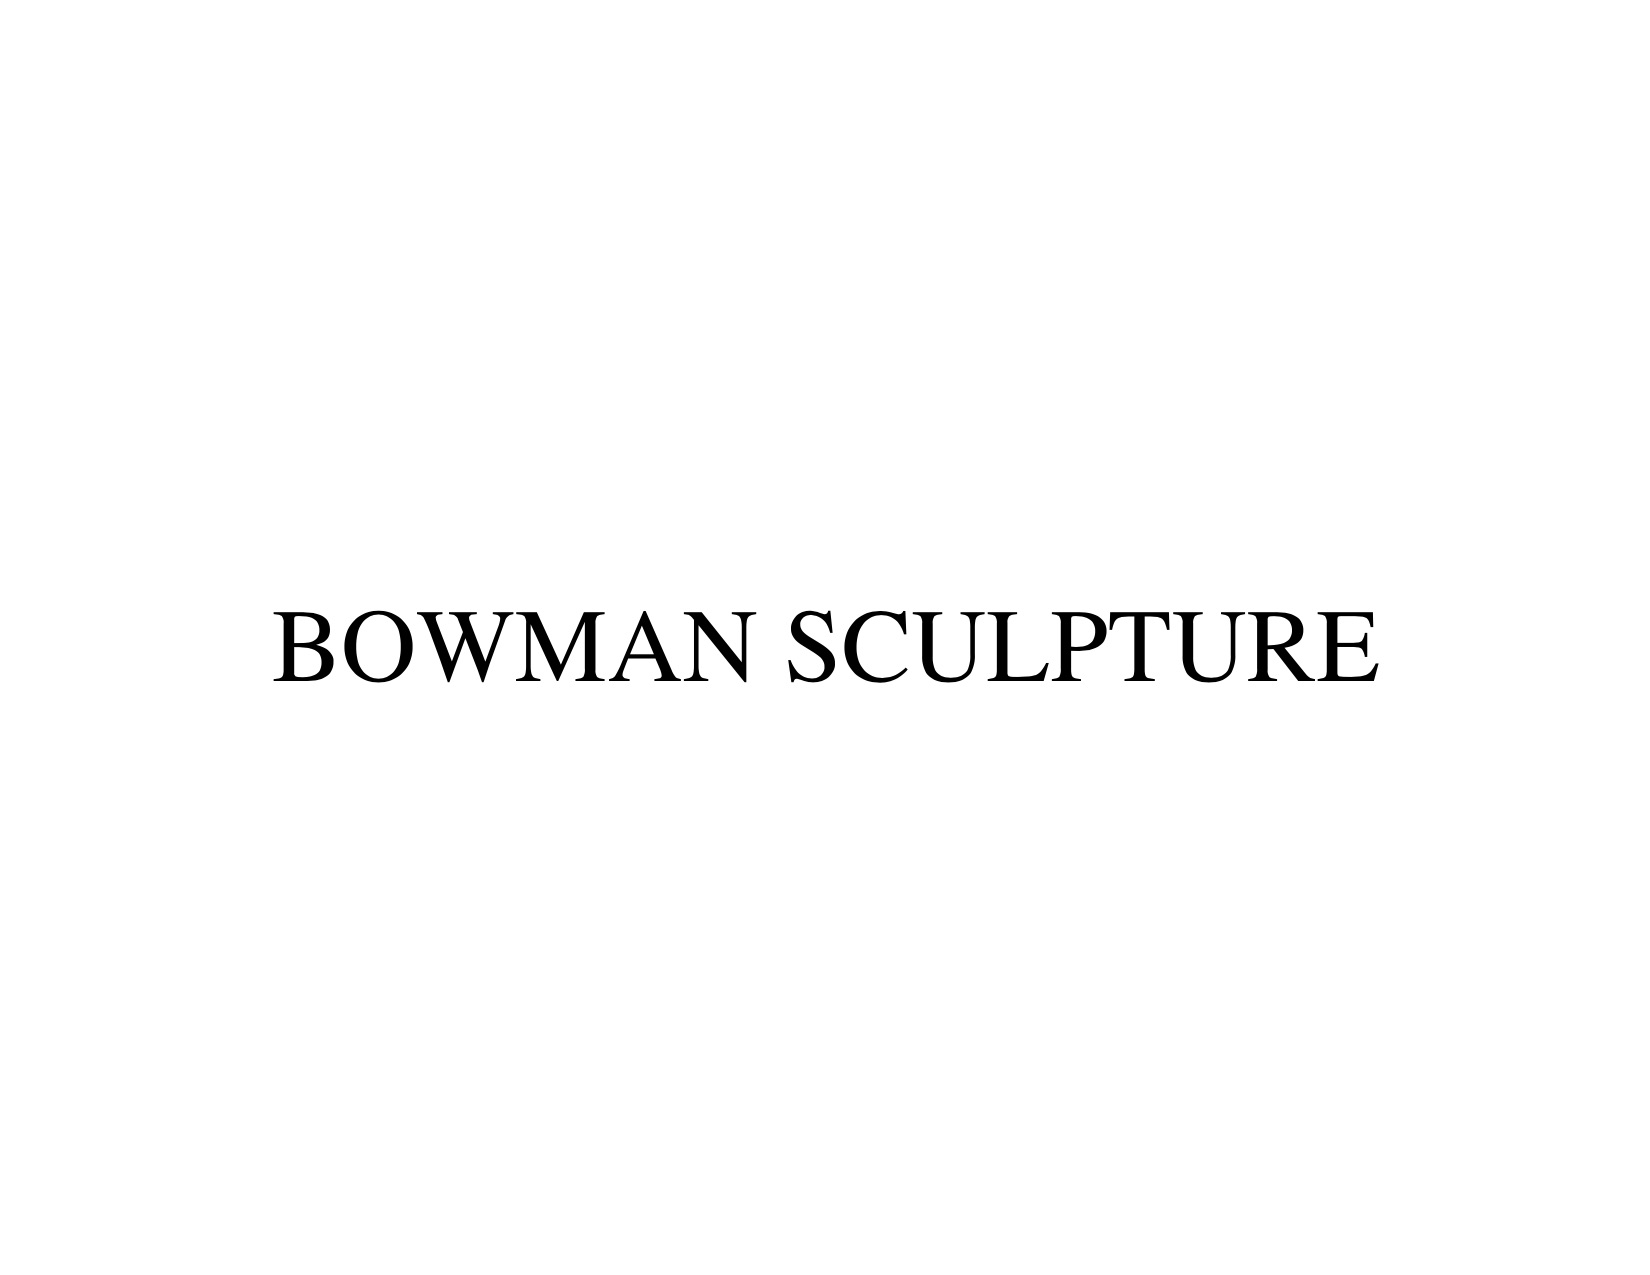 Bowman Sculpture